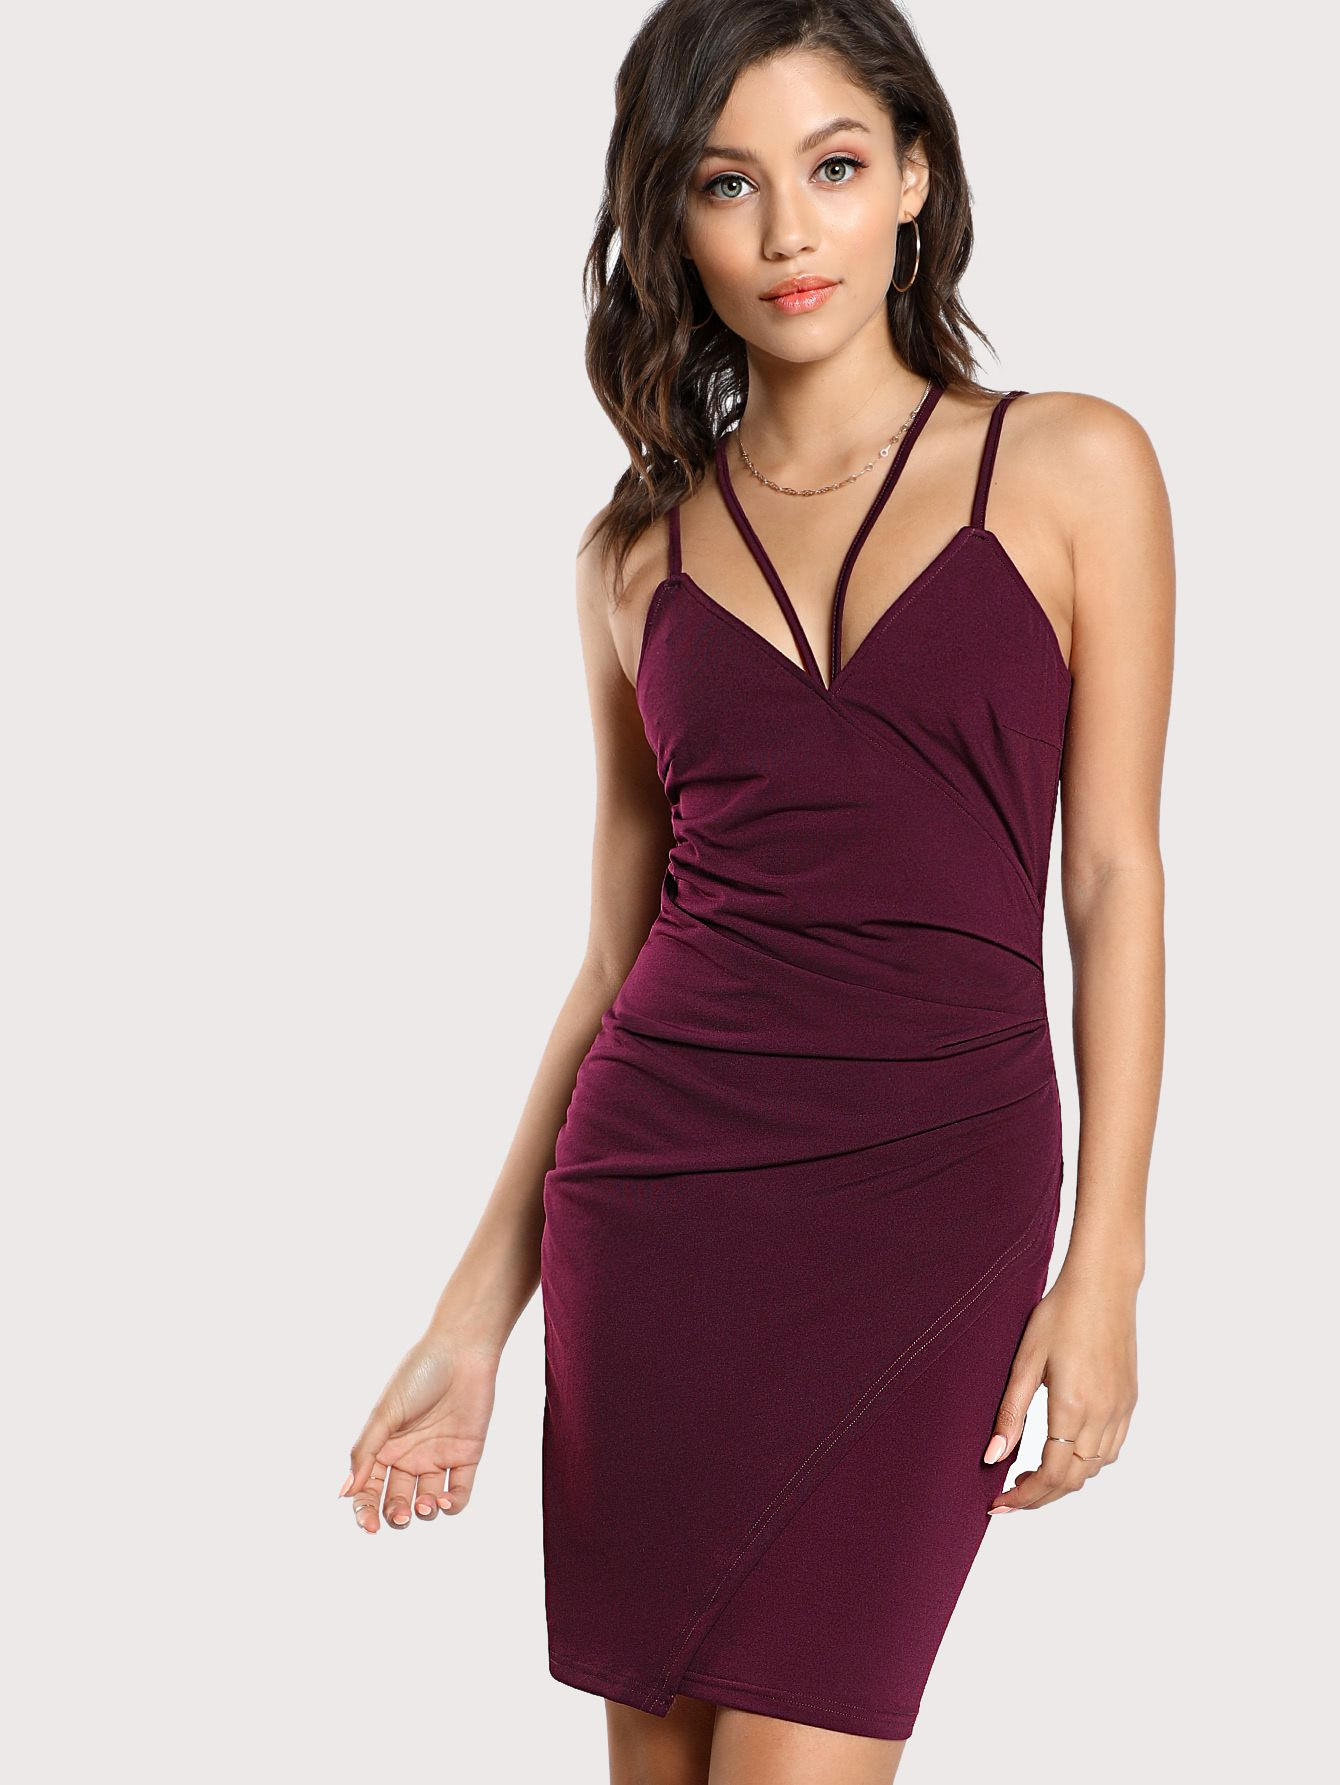 b7bbdf3735 Shop Surplice Strappy Slim Cami Dress online. SheIn offers Surplice Strappy  Slim Cami Dress & more to fit your fashionable needs.